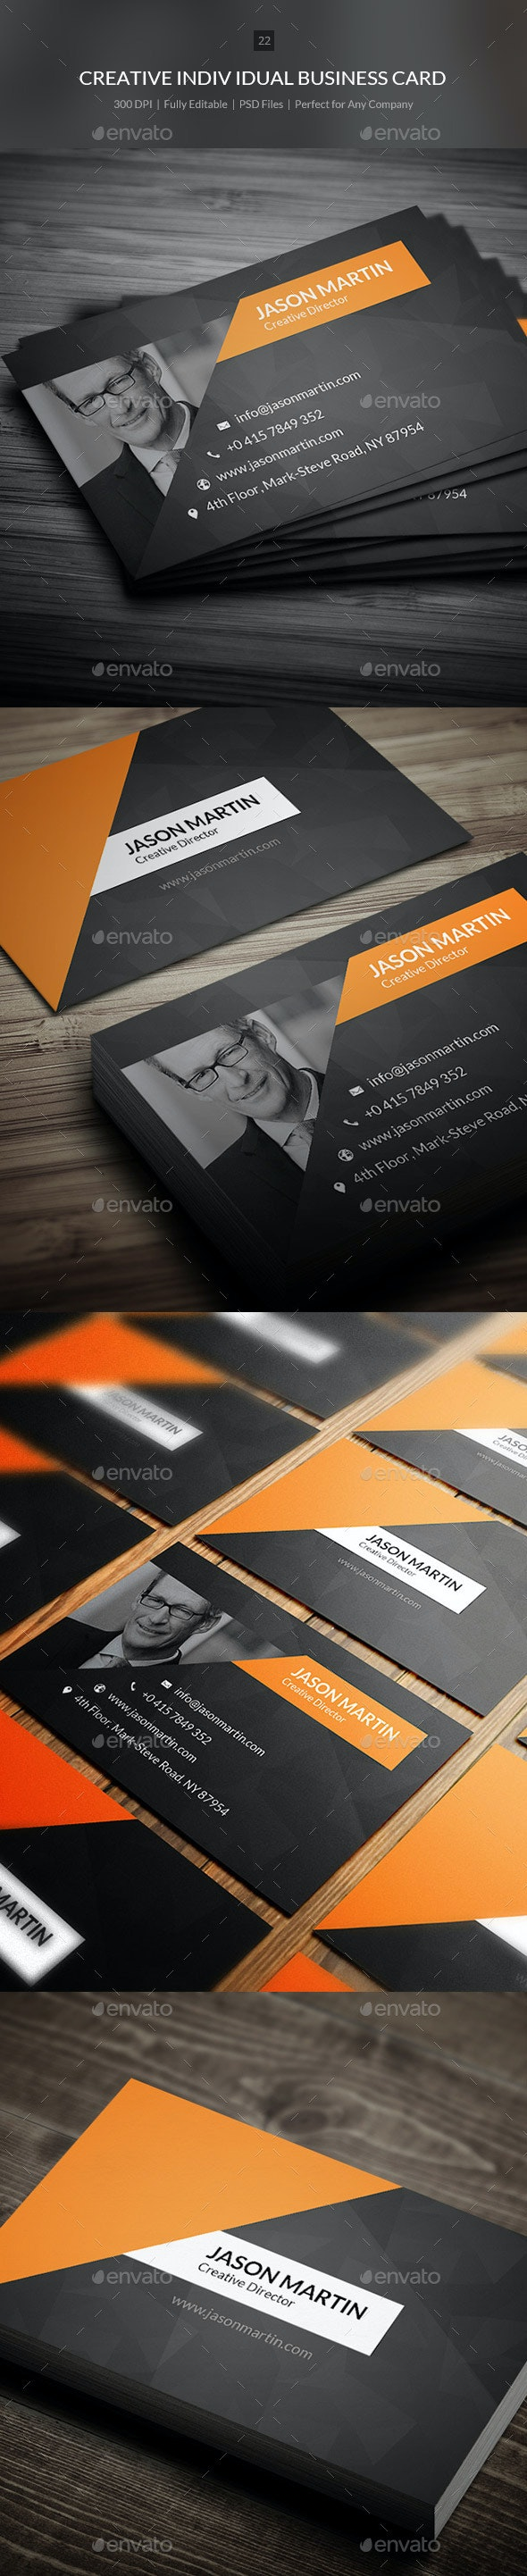 Creative Individual Business Card - 22 - Creative Business Cards